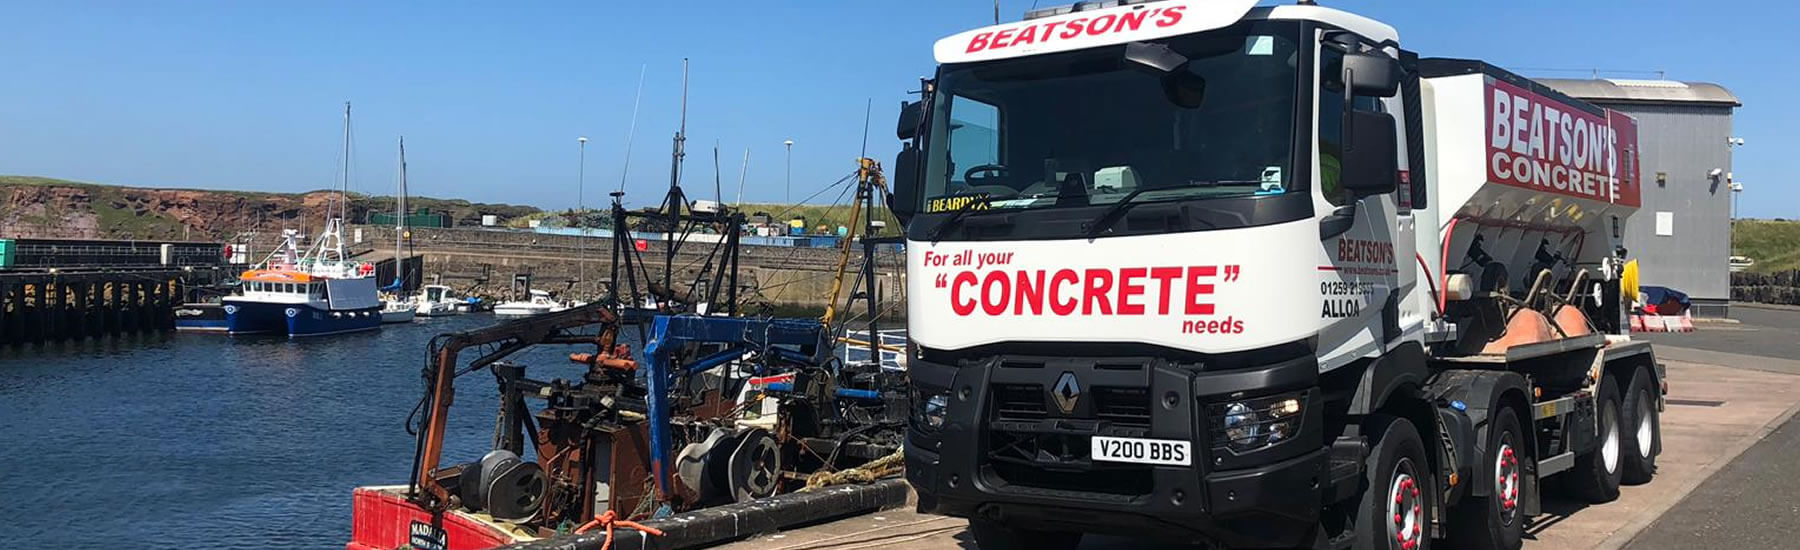 Concrete delivery service Scotland